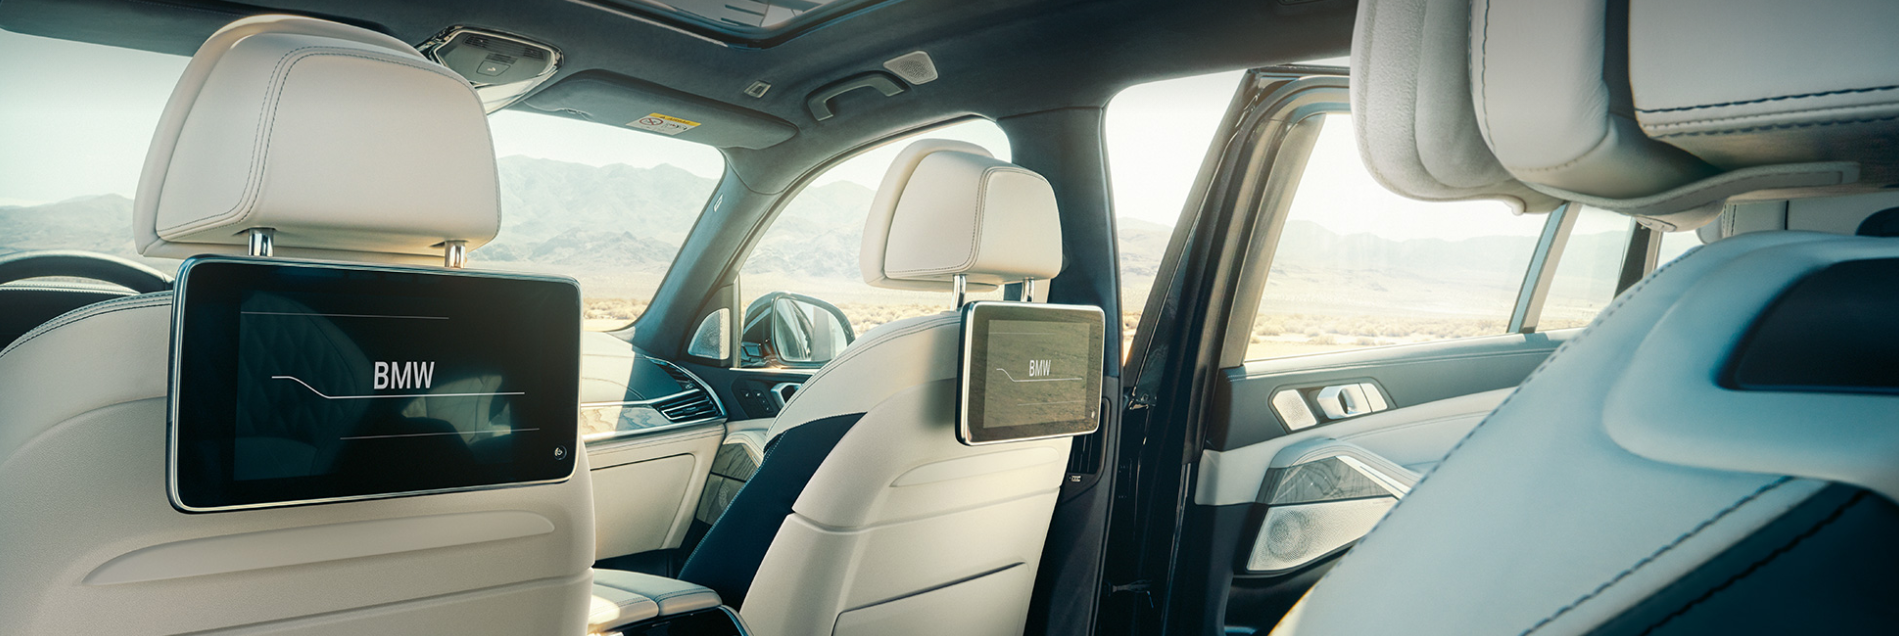 Interior of the BMW X7 with the second row seats and screens